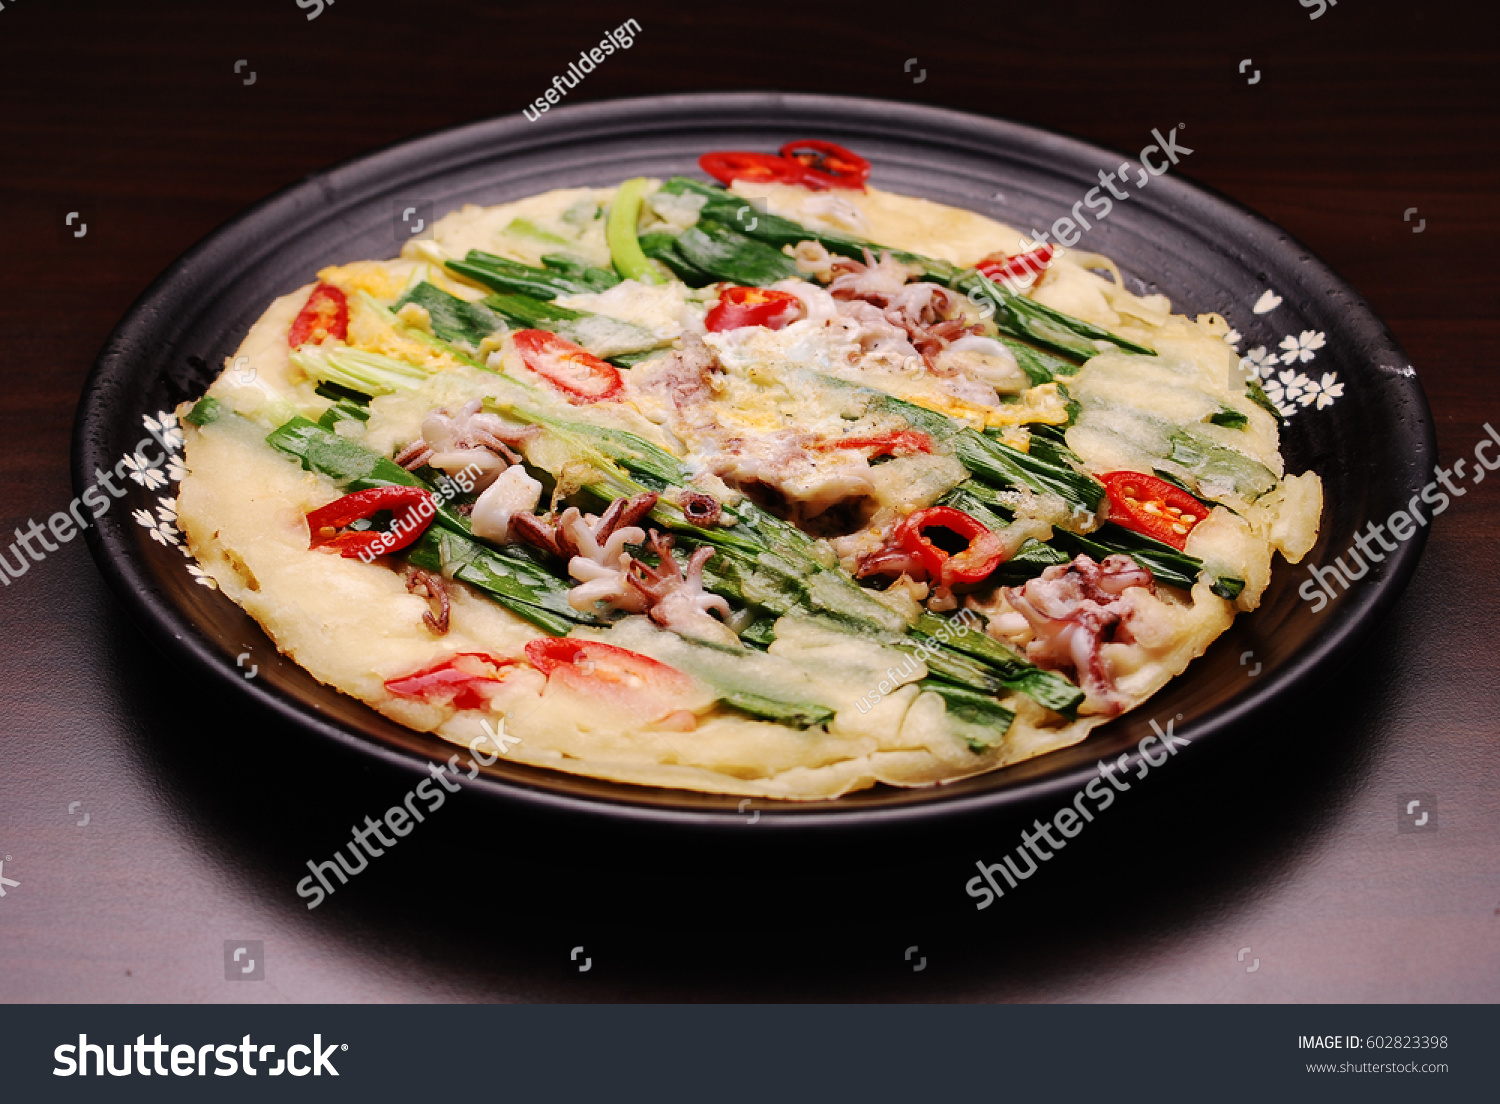 Korean food seafood pancake haemul pajeon stock photo royalty free korean food seafood pancake haemul pajeon welsh onion green onion scallion forumfinder Images